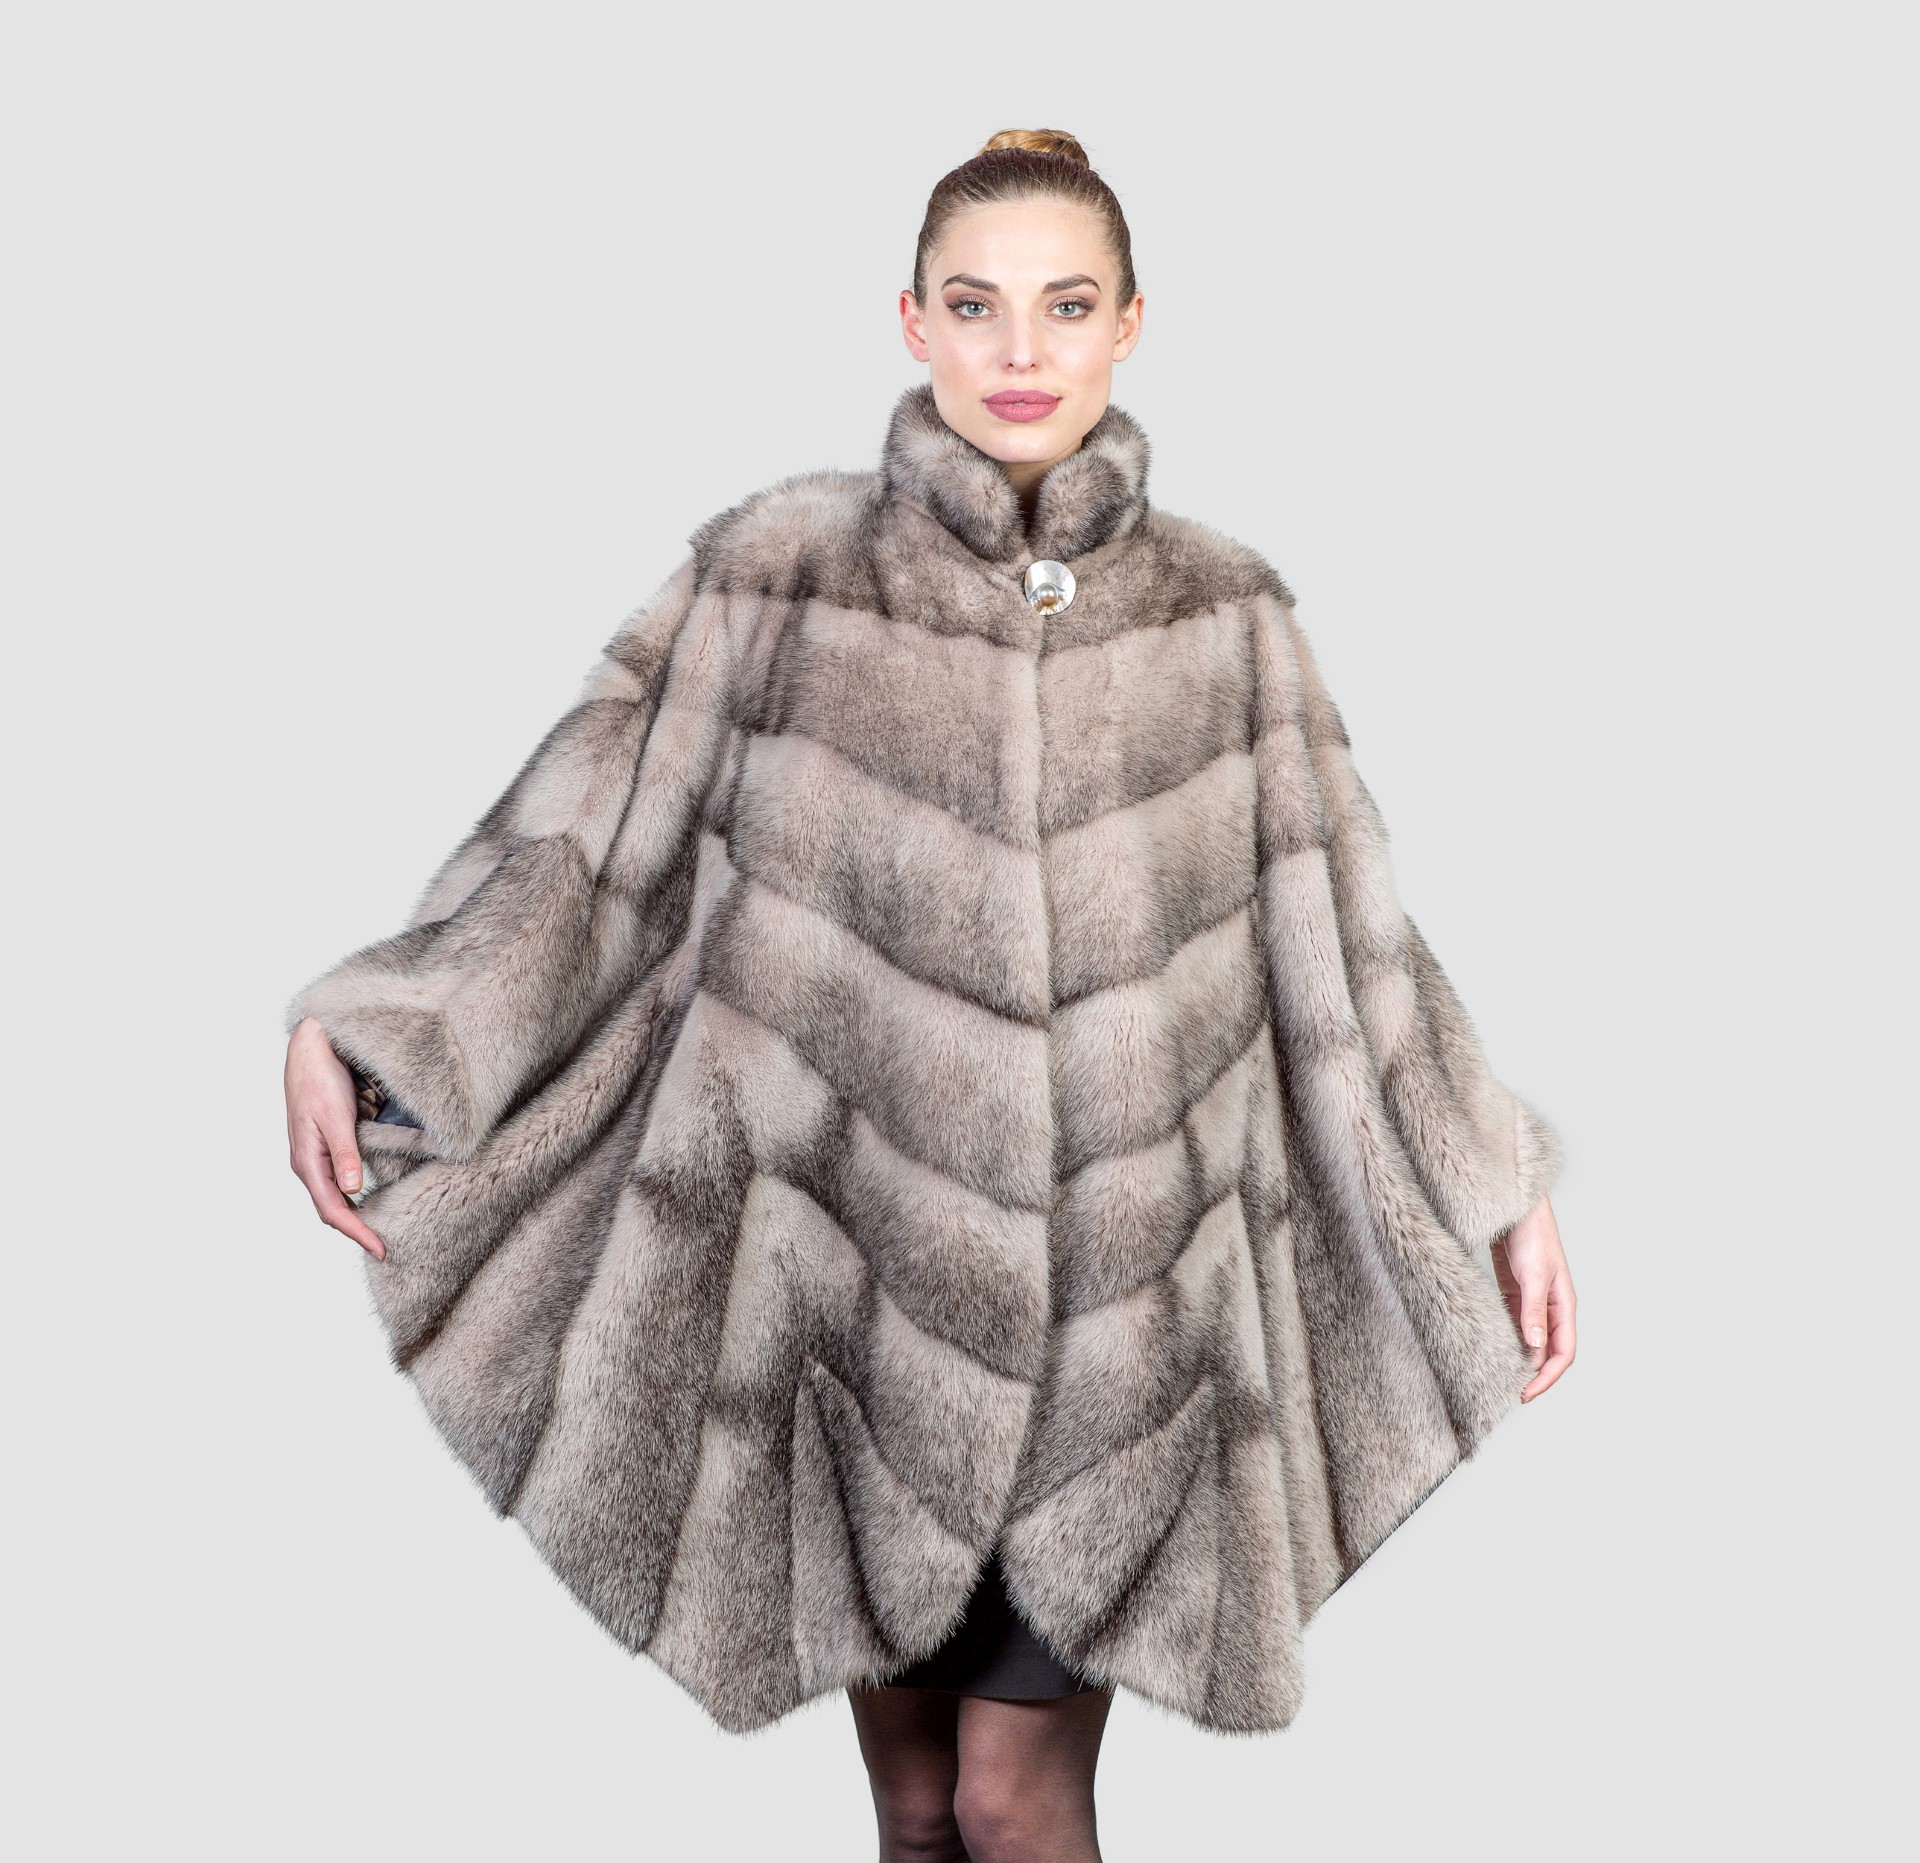 Black Cross Mink Fur Cape. 100% Real Fur Coats and Accessories. for Sable Fur Cape  104xkb